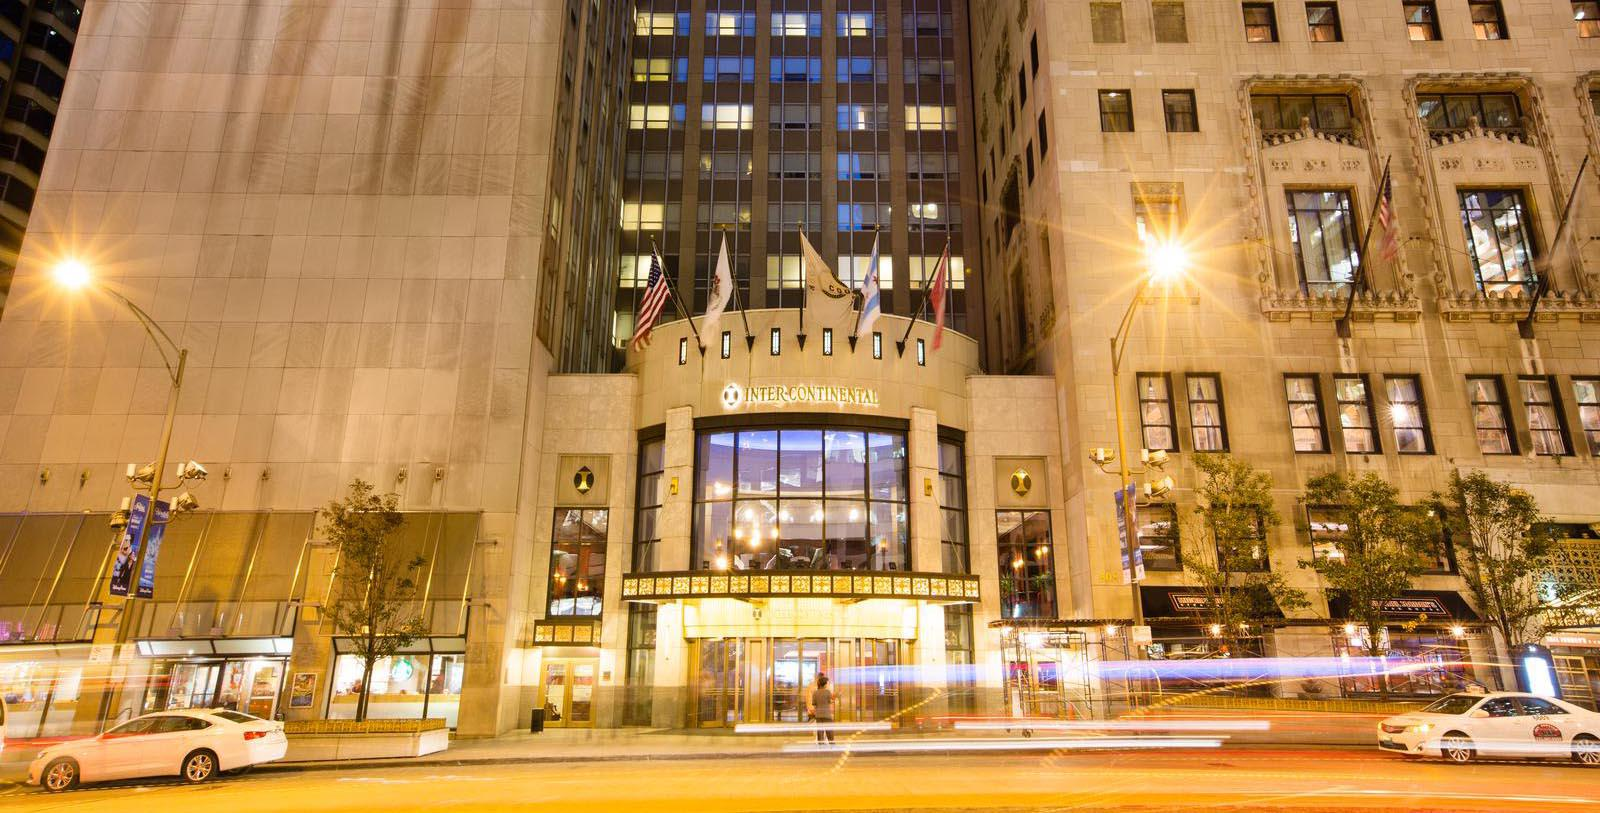 Image of Exterior at Night, InterContinental Chicago Magnificent Mile in Chicago, Illinois, 1929, Member of Historic Hotels of America, Overview